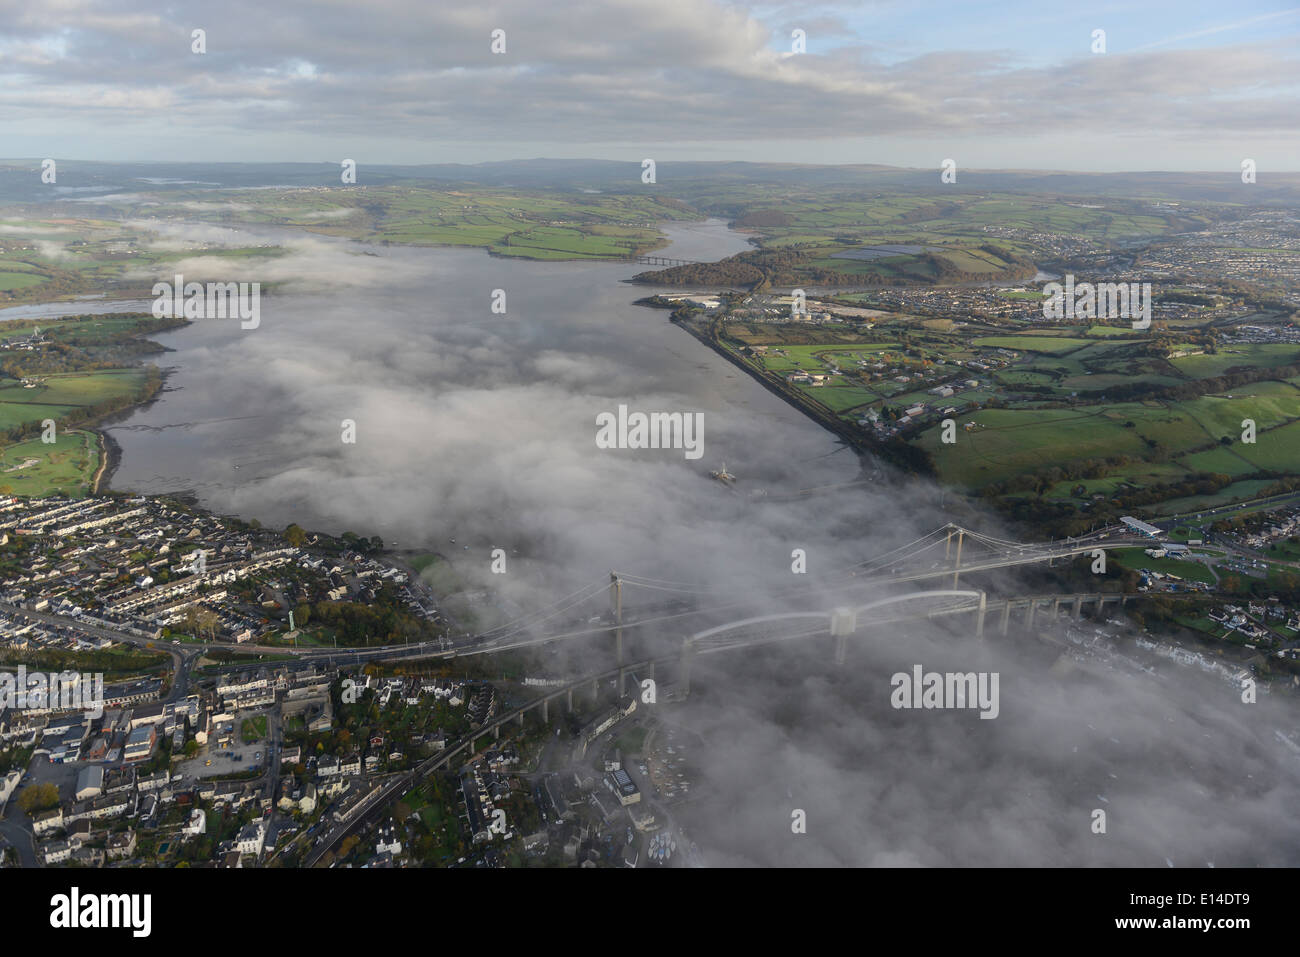 An aerial view over the River Tamar showing early morning mist Stock Photo